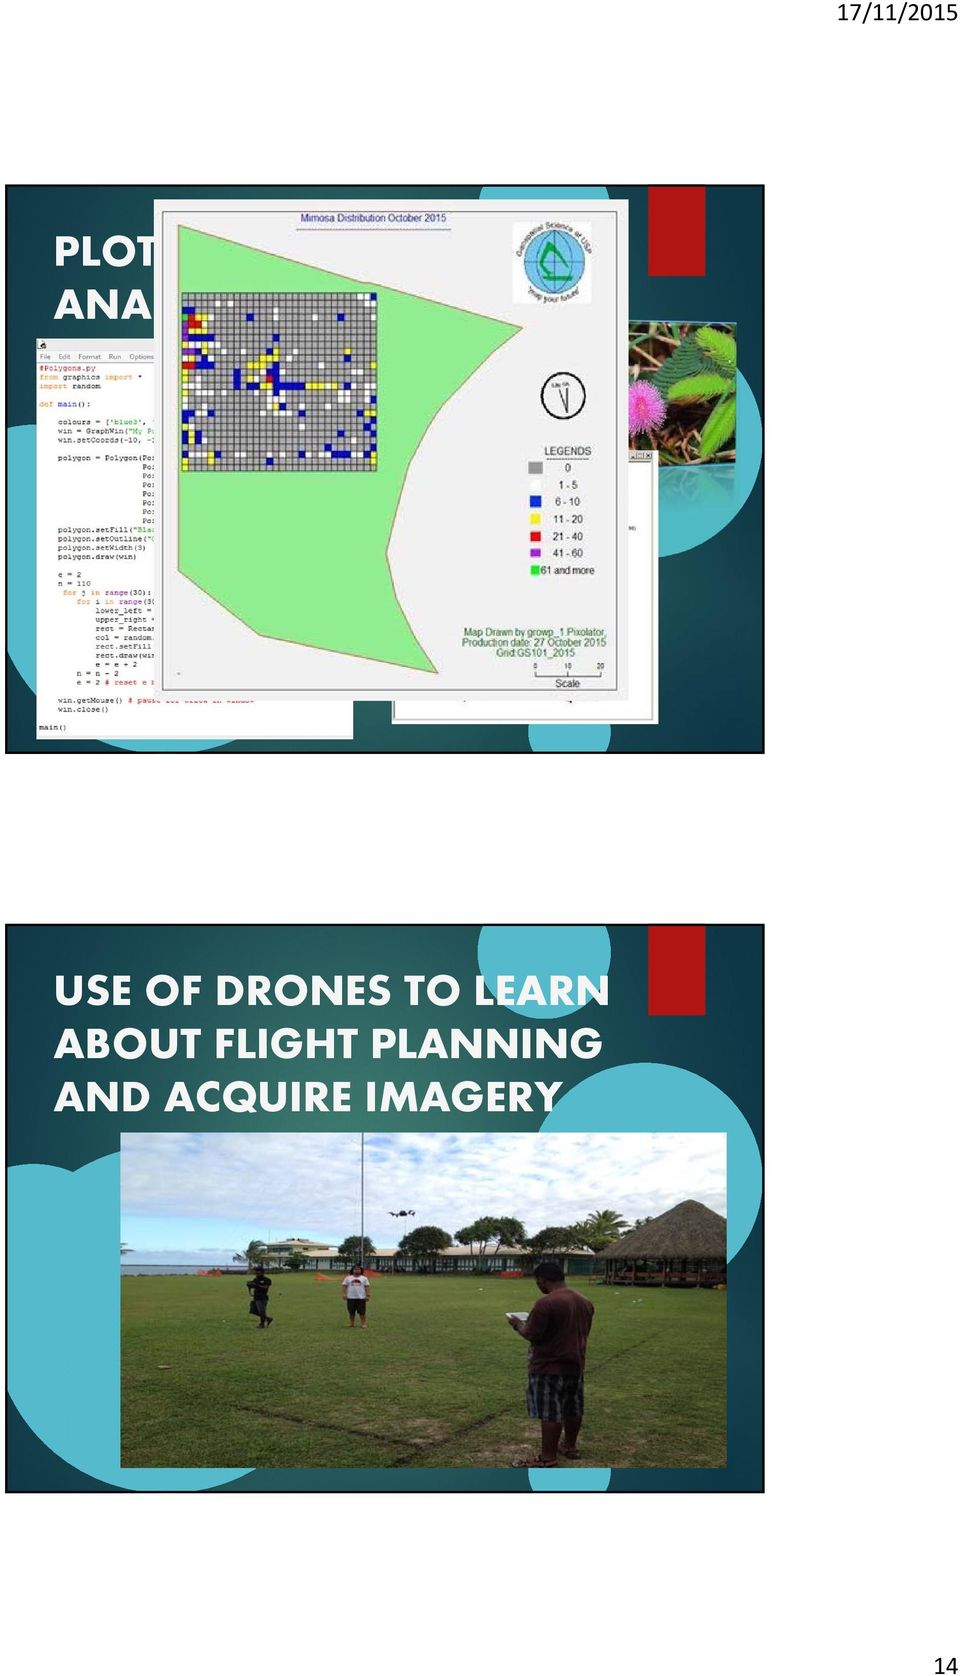 DRONES TO LEARN ABOUT